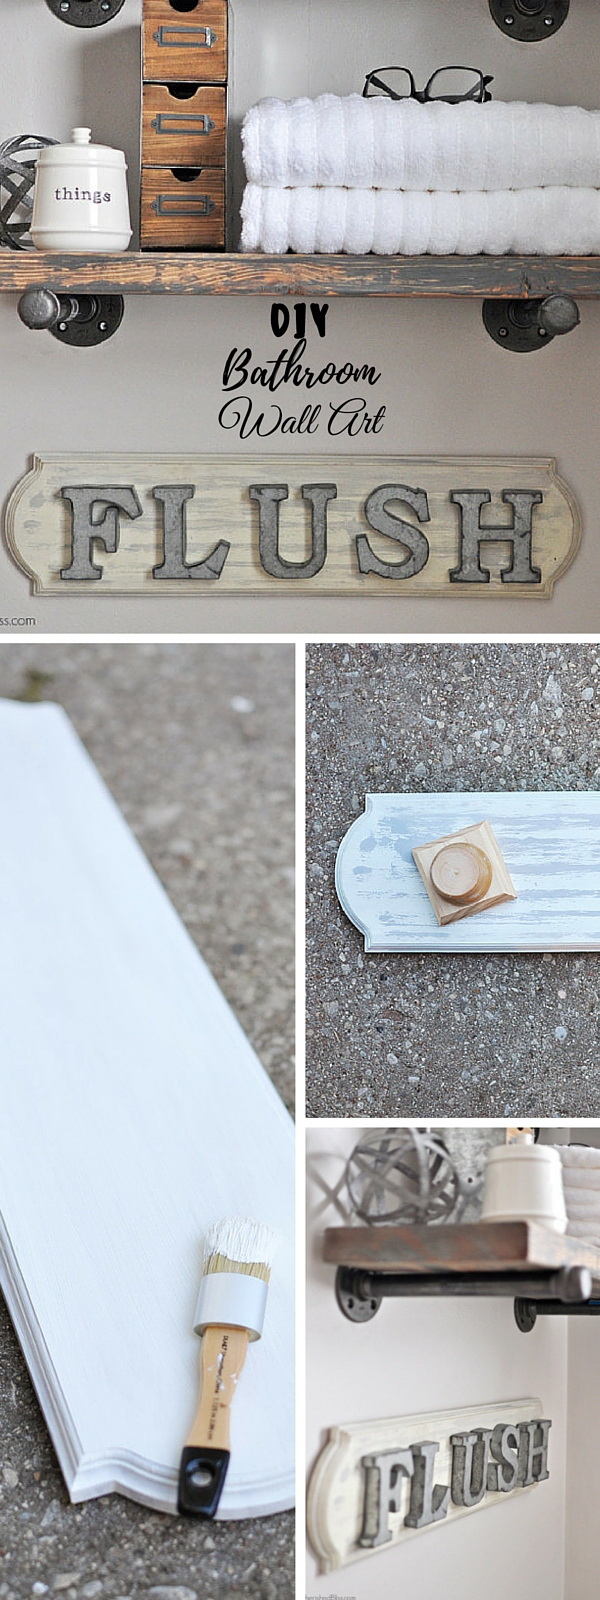 DIY Industrial Farmhouse Bathroom Sign. Add much more character, style and rustic warmth to your bathroom room decor with this easy to make Sign!